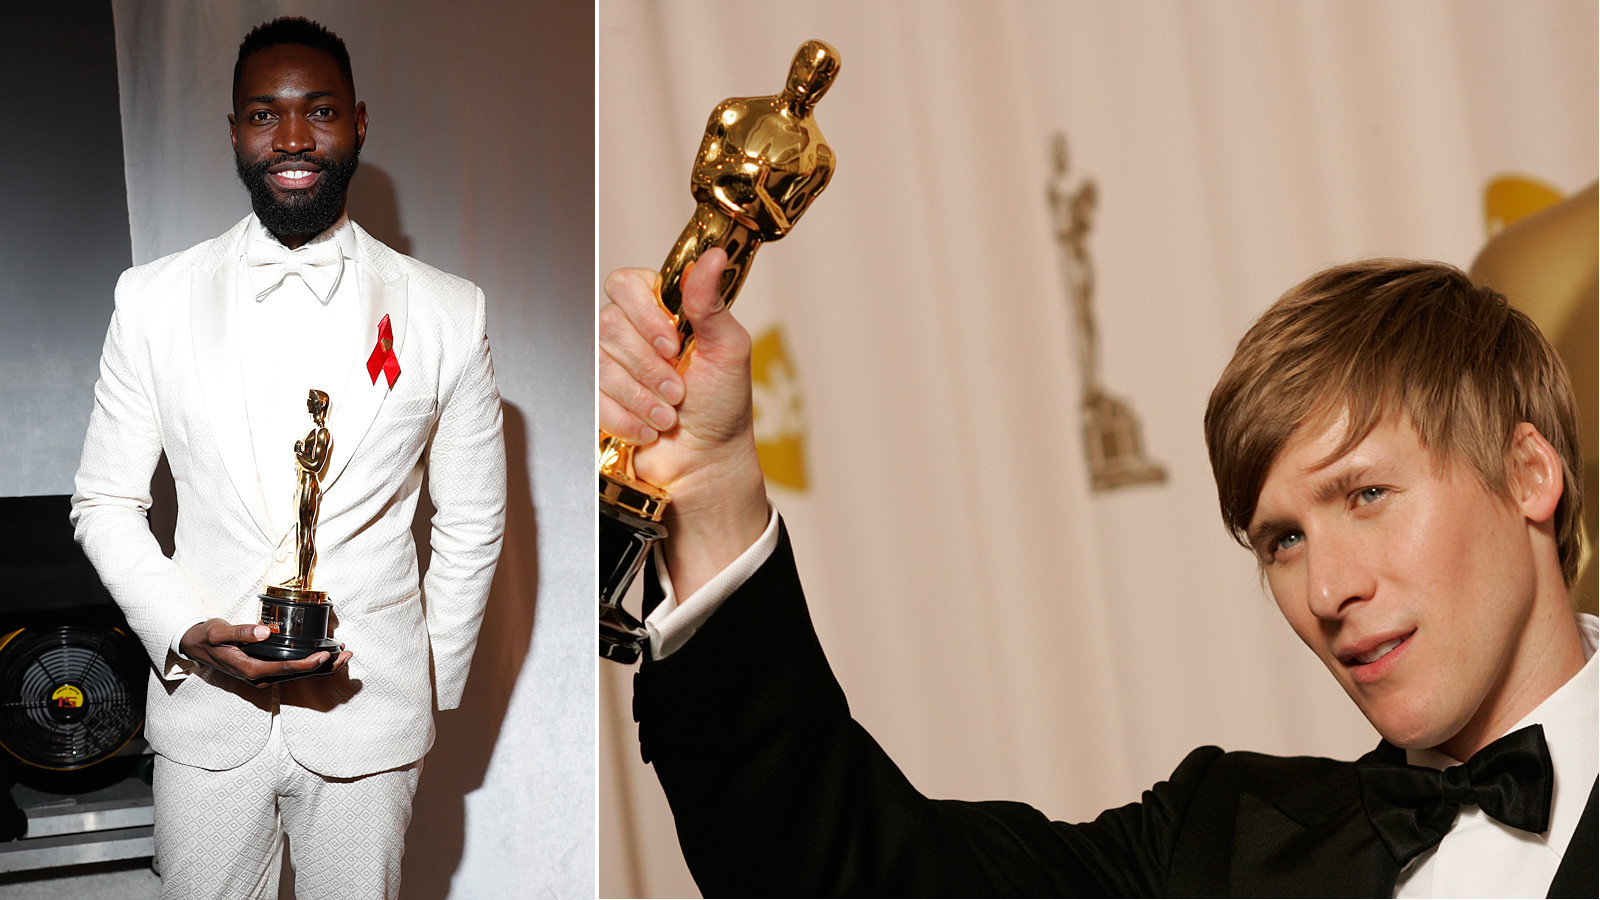 Tarell Alvin McCraney, left, at the 2017 Academy Awards and Dustin Lance Black at the 2009 Academy Awards. (Jay L. Clendenin / Lawrence K. Ho / Los Angeles Times)